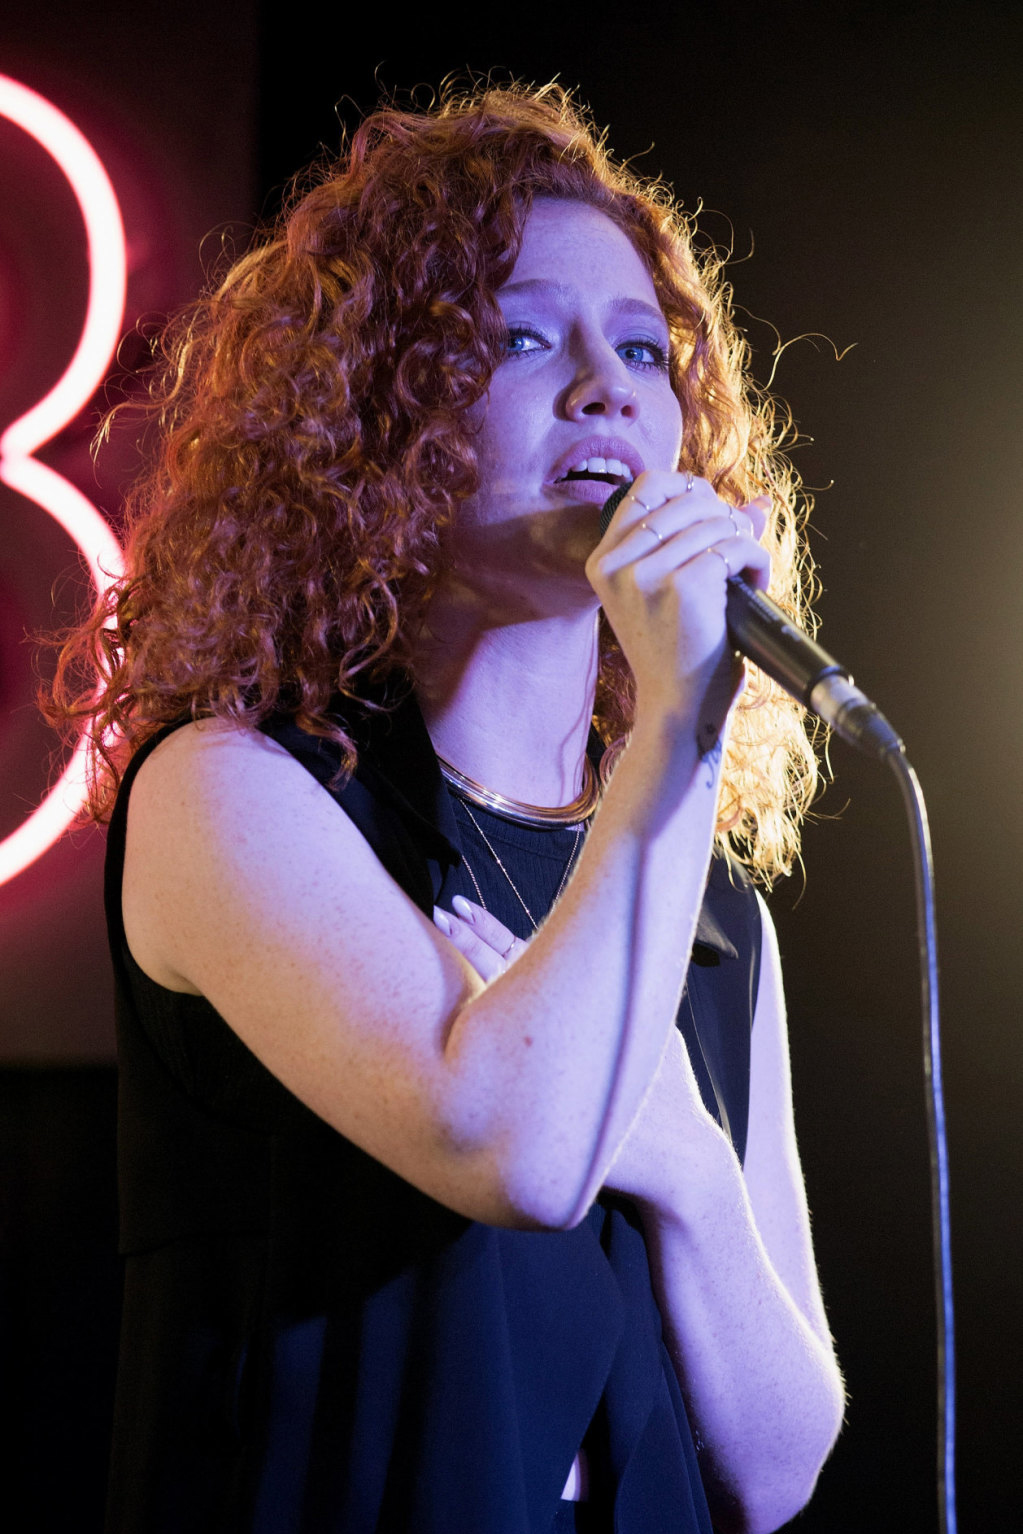 Jess Glynne Album Signing and Gig at HMV in London